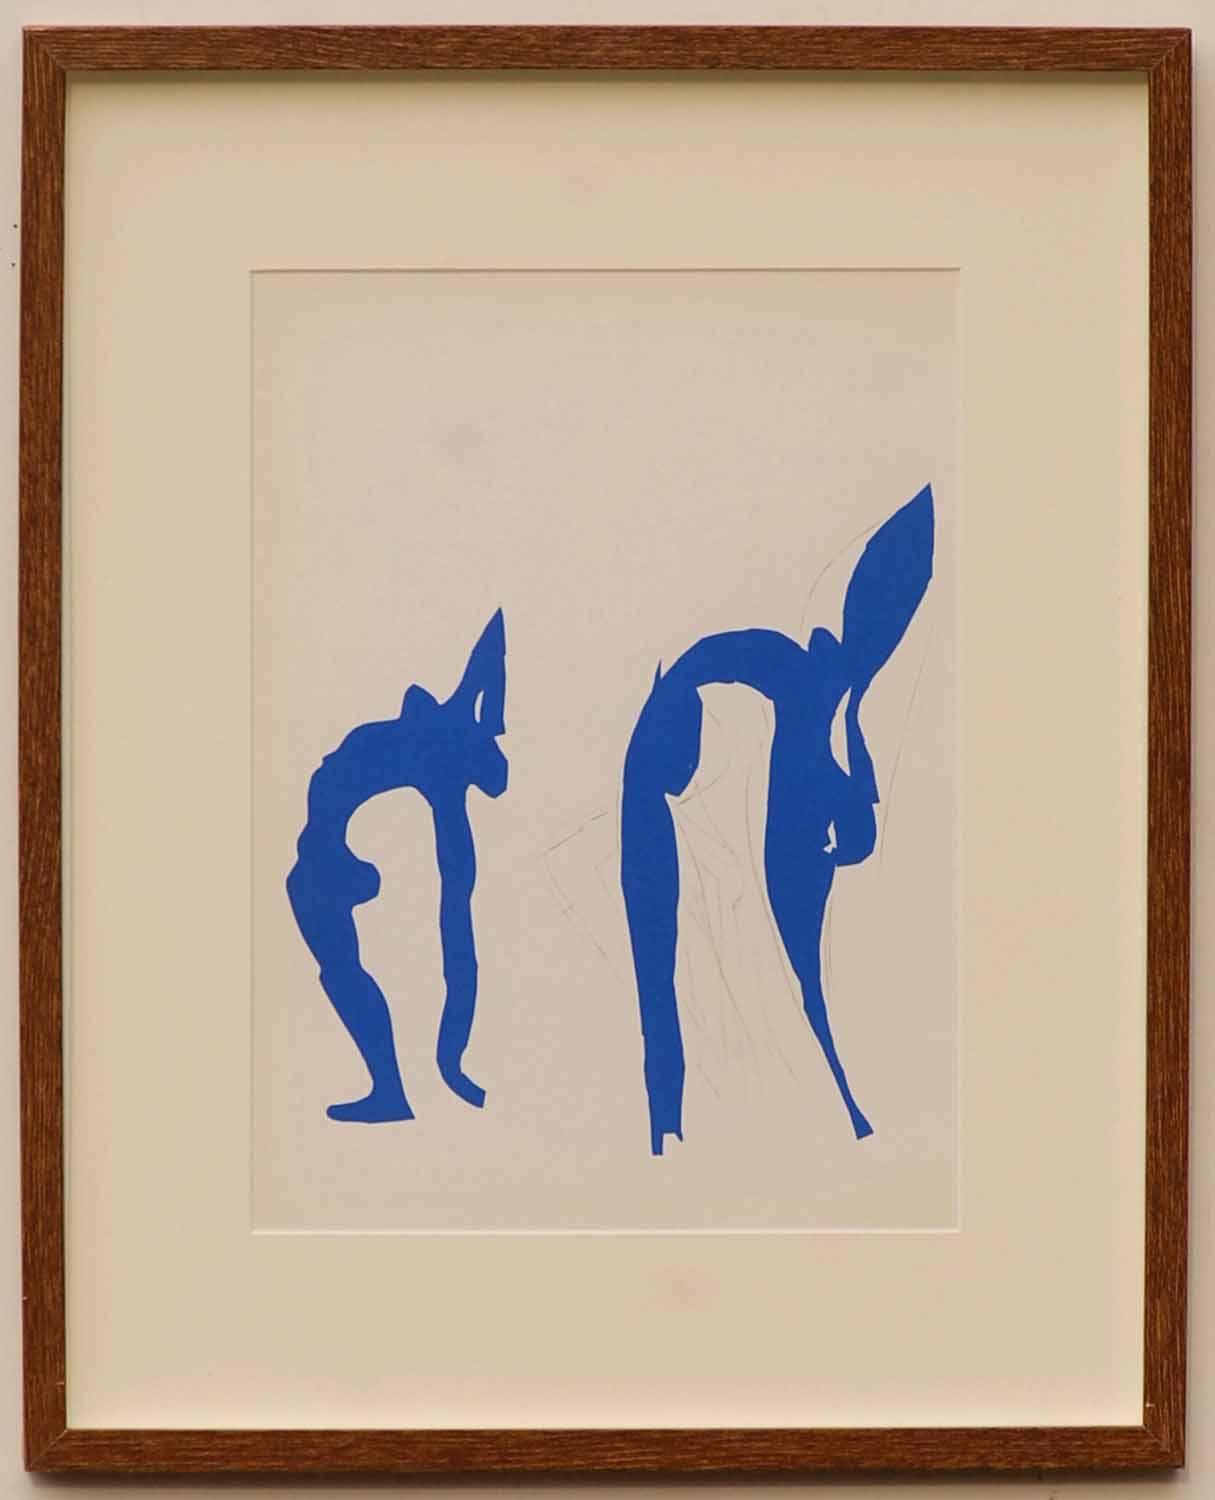 Lot 115 - HENRI MATISSE 'Acrobates', original lithograph from the 1954 edition after Matisse's cut-outs,